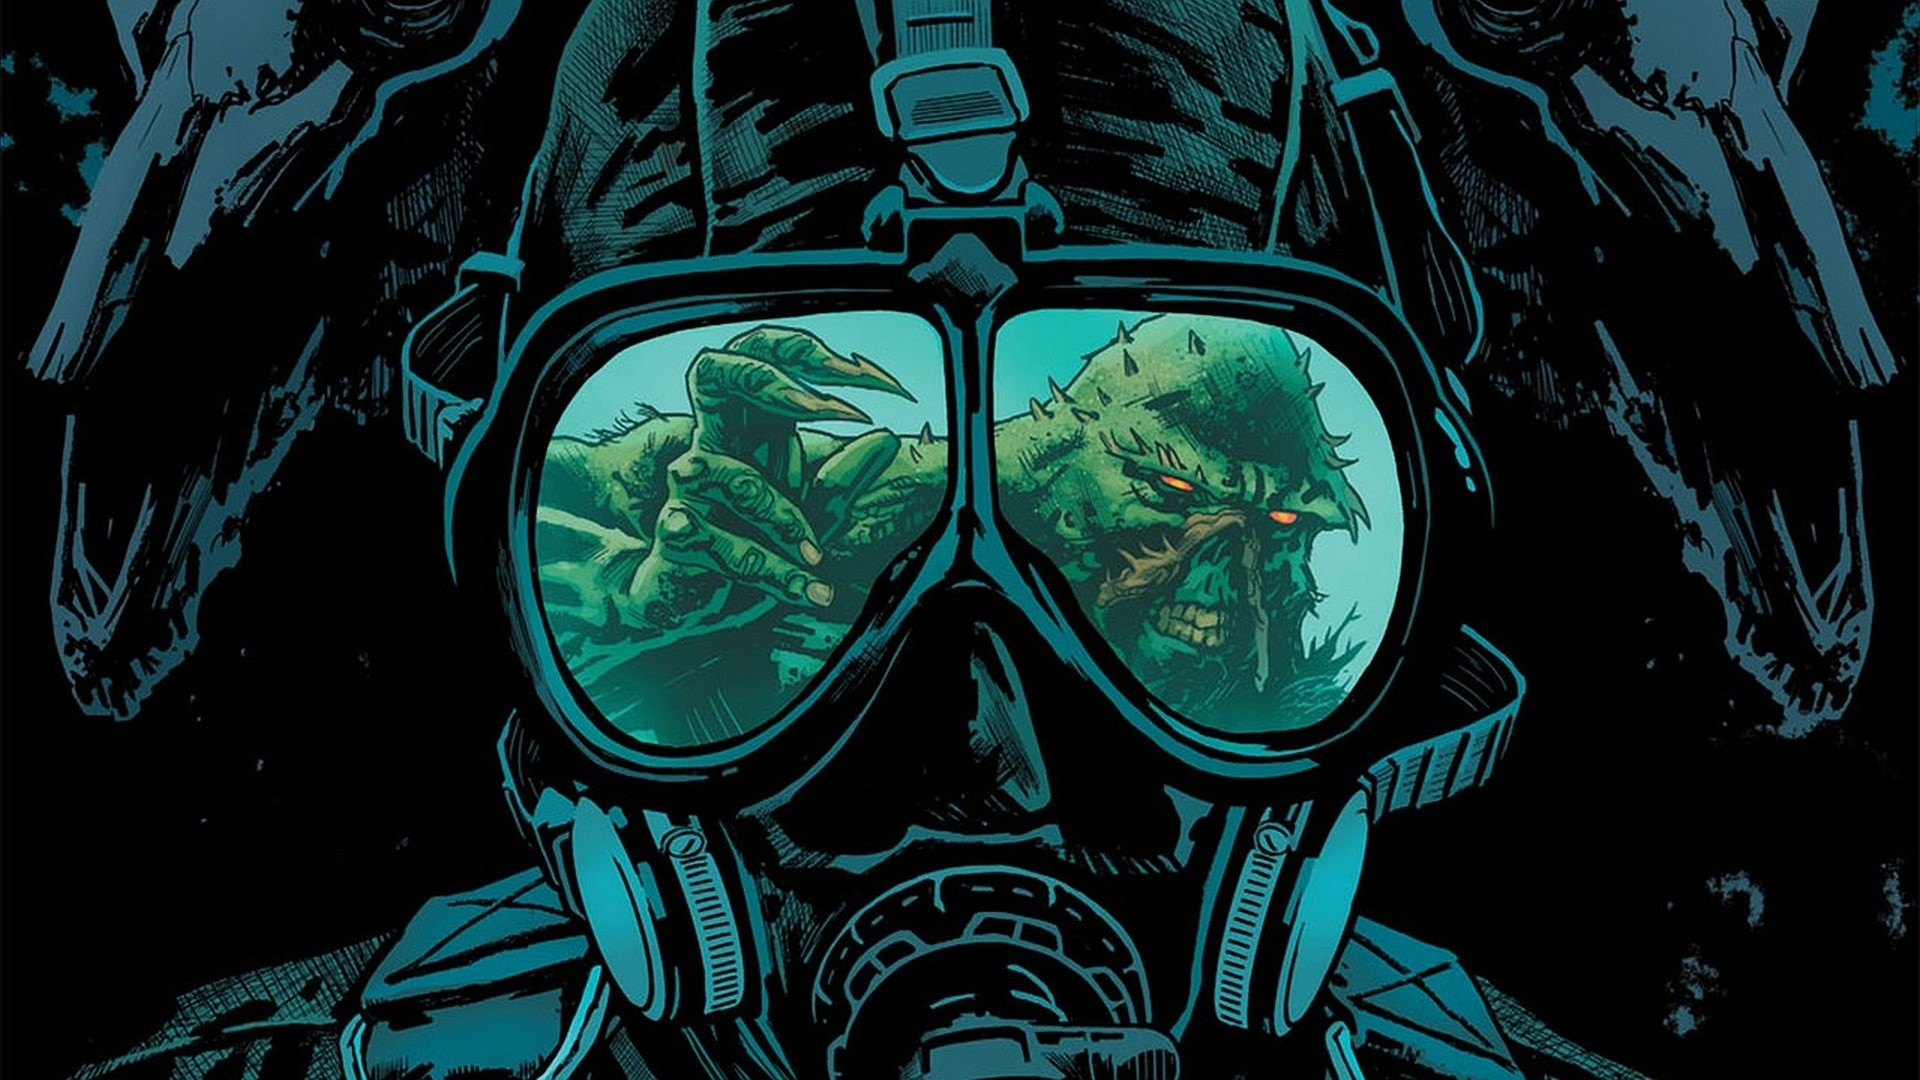 free screensaver wallpapers for swamp thing by Steel Round (2017-03-16)